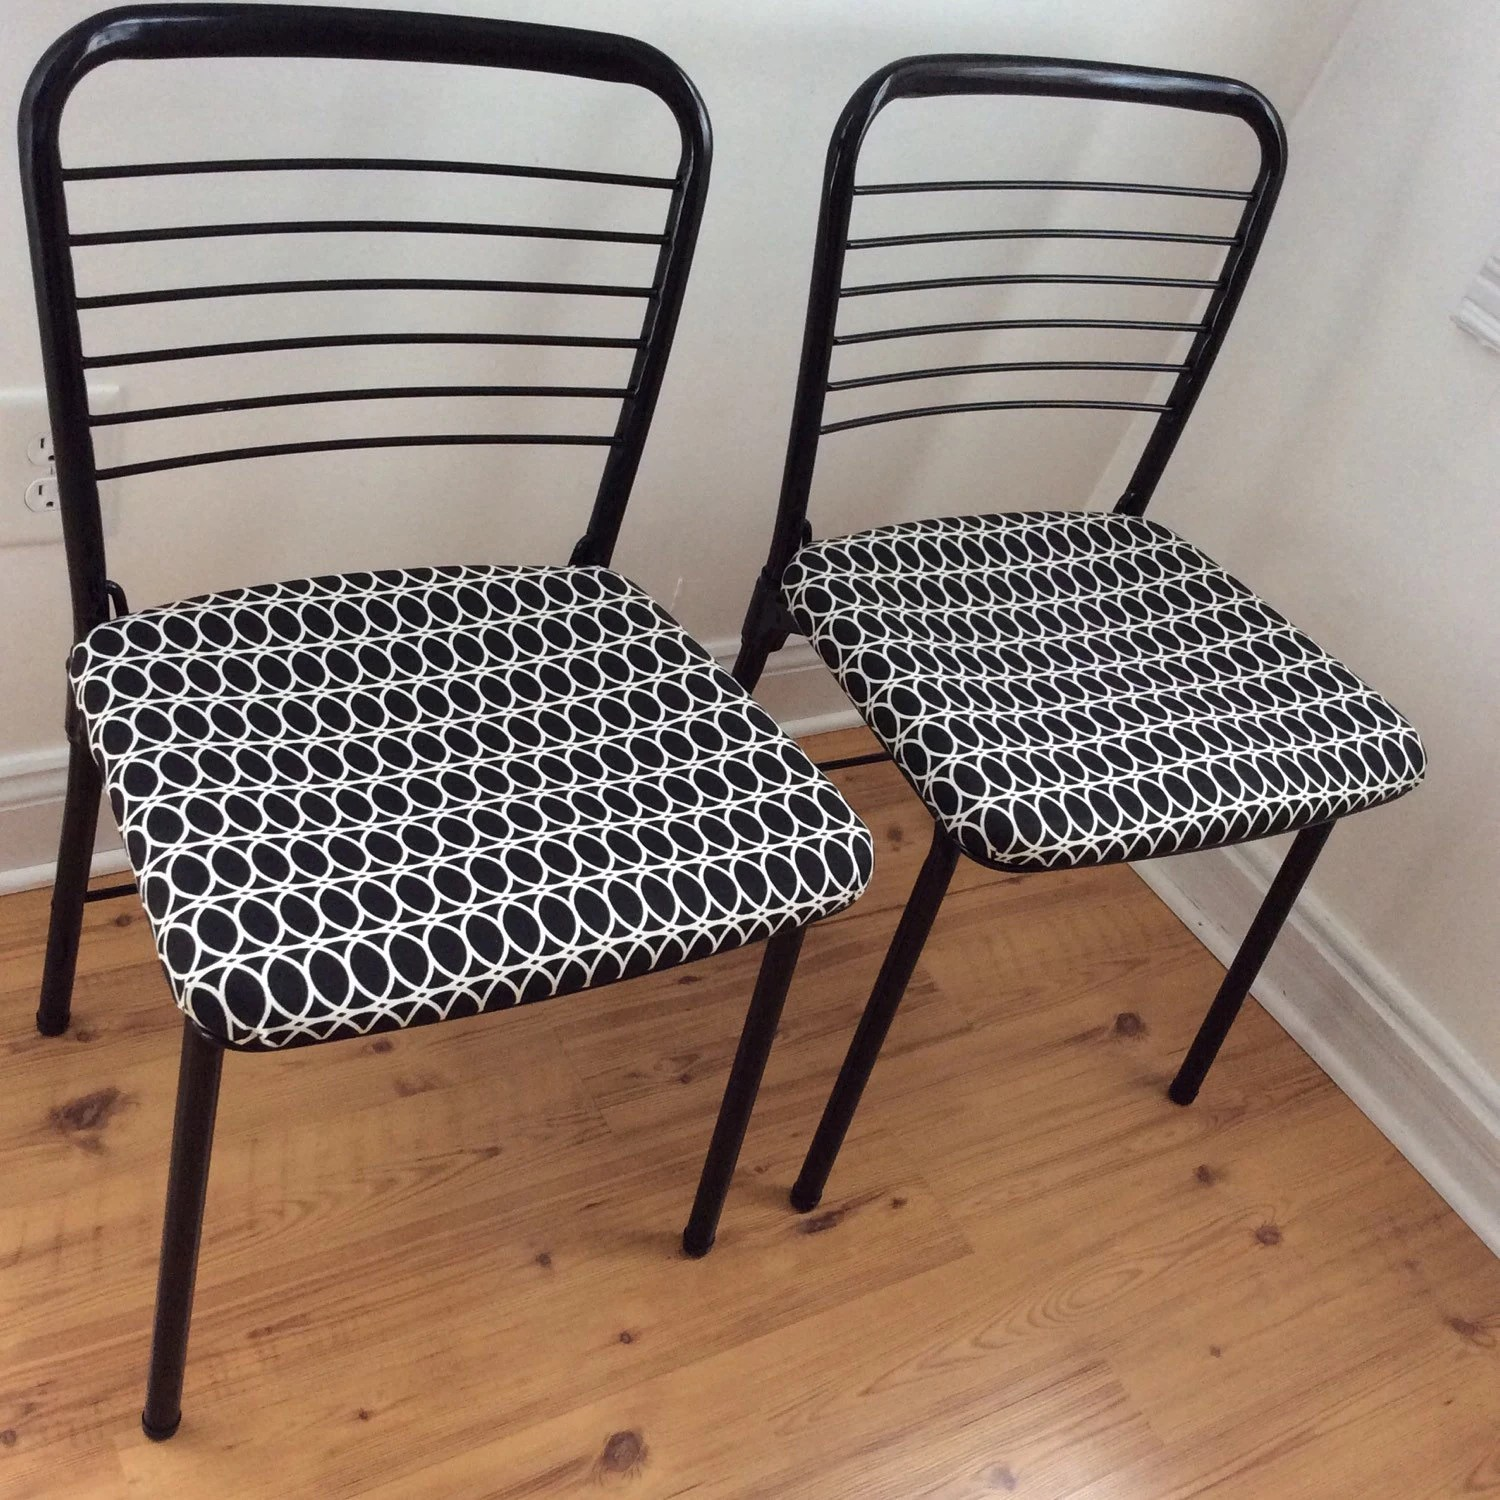 cosco card table and chairs santa chair covers hobby lobby mid century mod set fashionfold  geometric